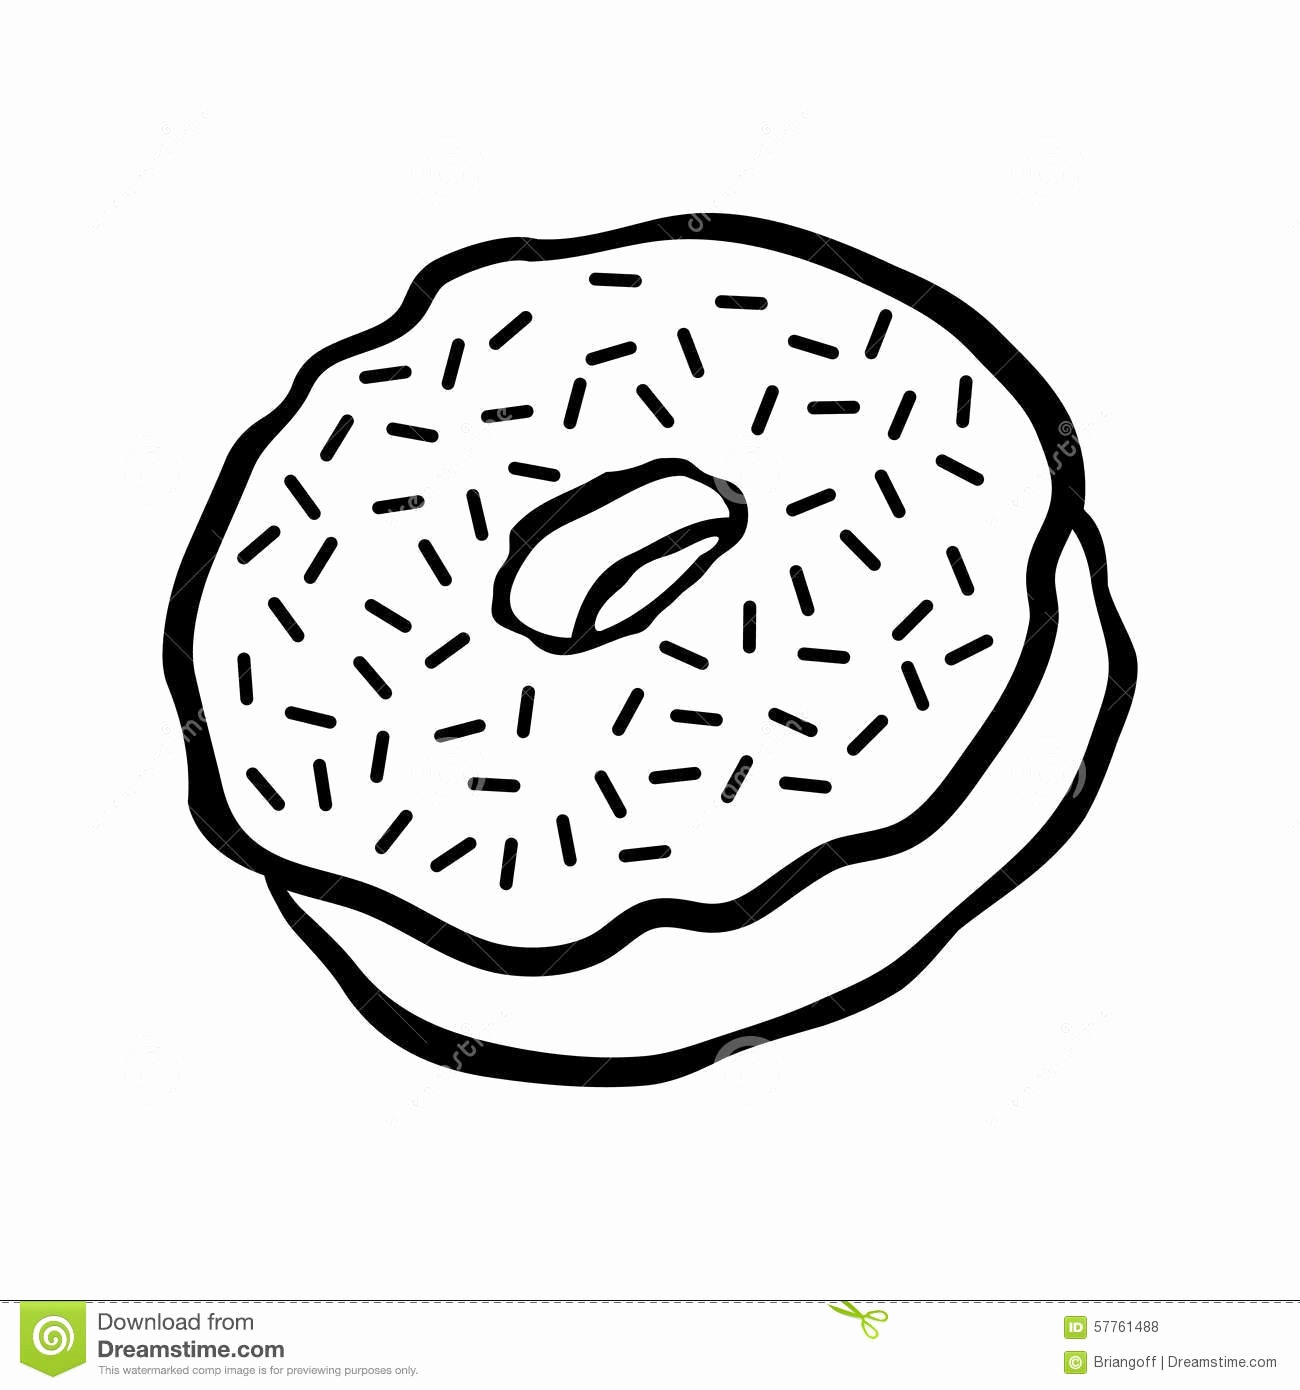 Donut Line Drawing at GetDrawings | Free download